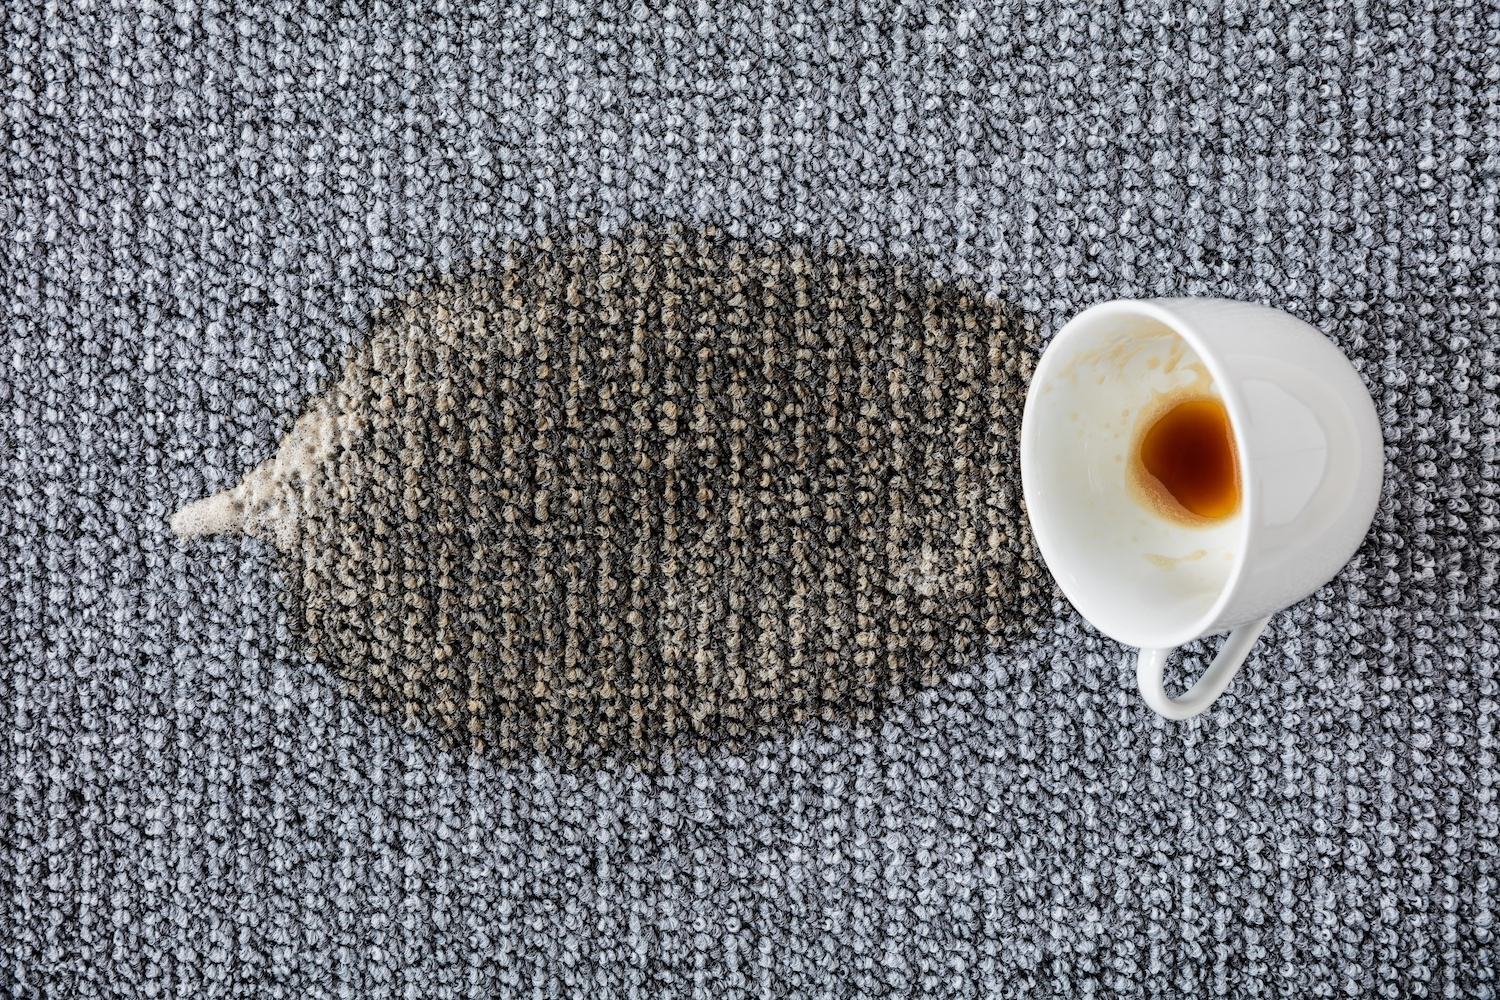 Carpet tile with coffee spill - cleaning carpet tiles top tips